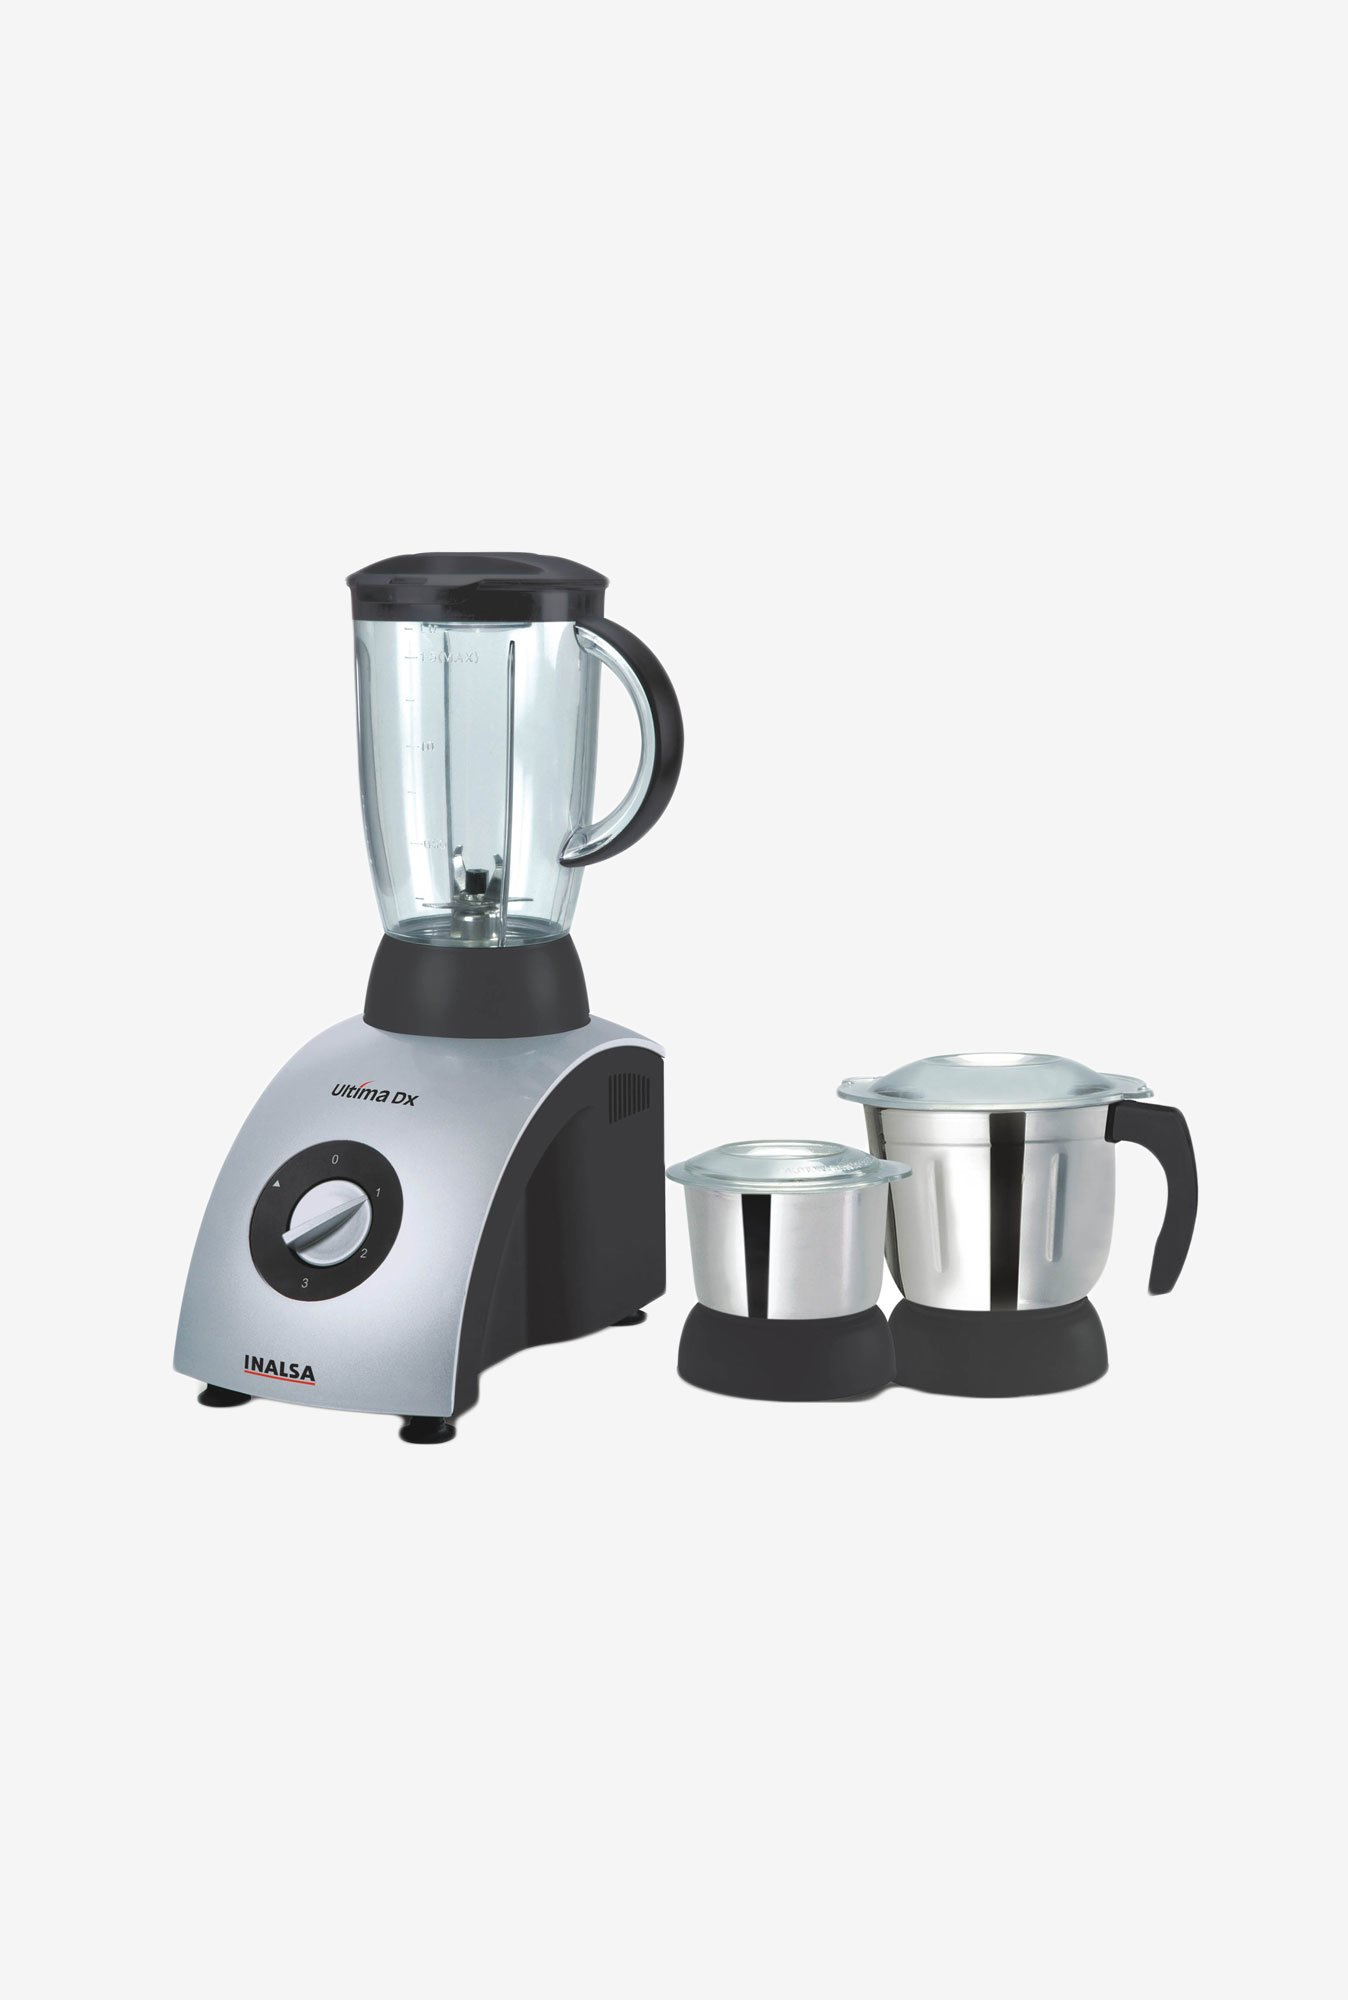 Inalsa Ultima Dx Mixer Grinder (Grey)